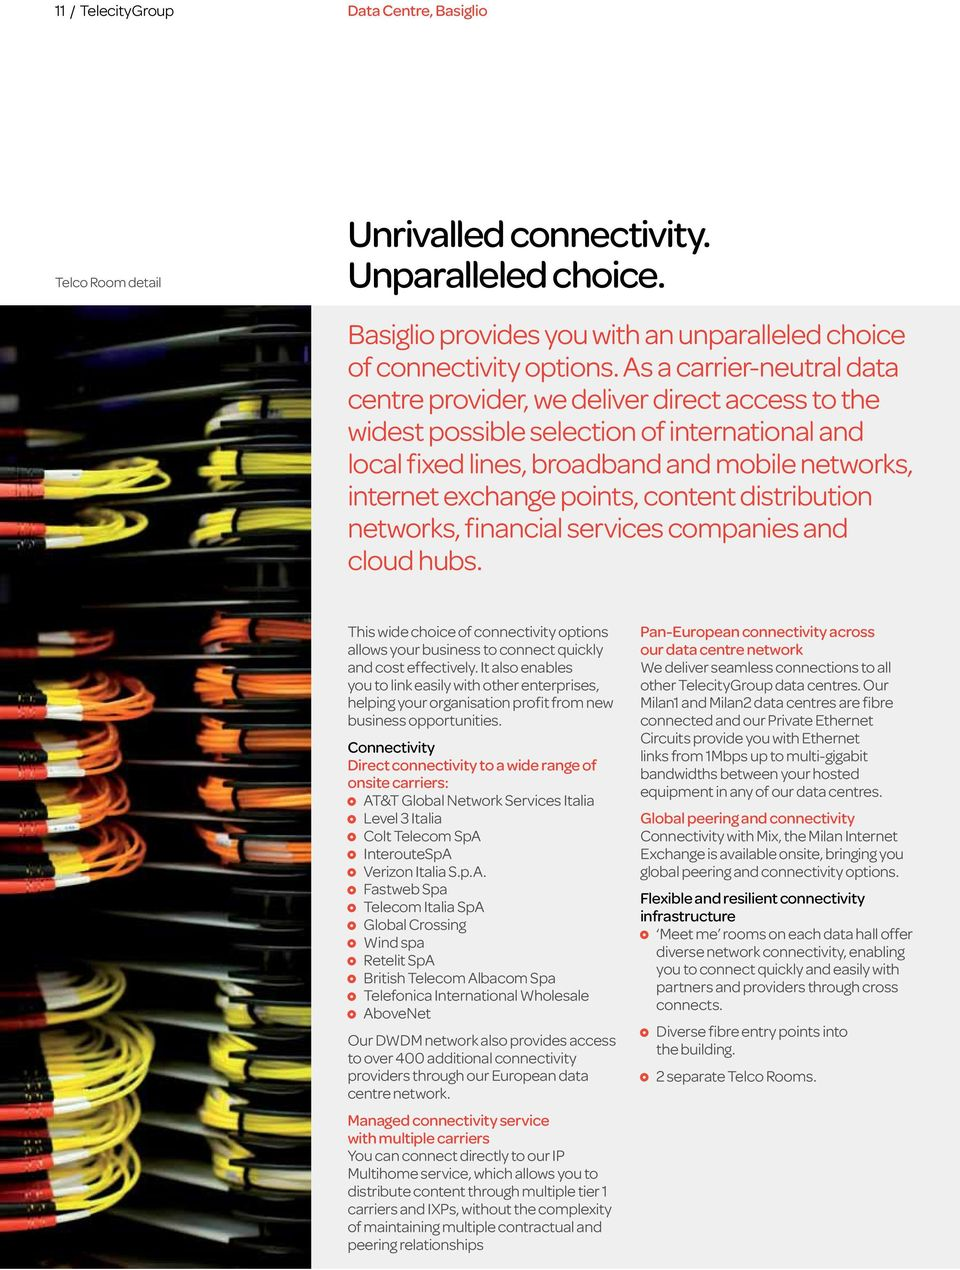 content distribution networks, financial services companies and cloud hubs. This wide choice of connectivity options allows your business to connect quickly and cost effectively.